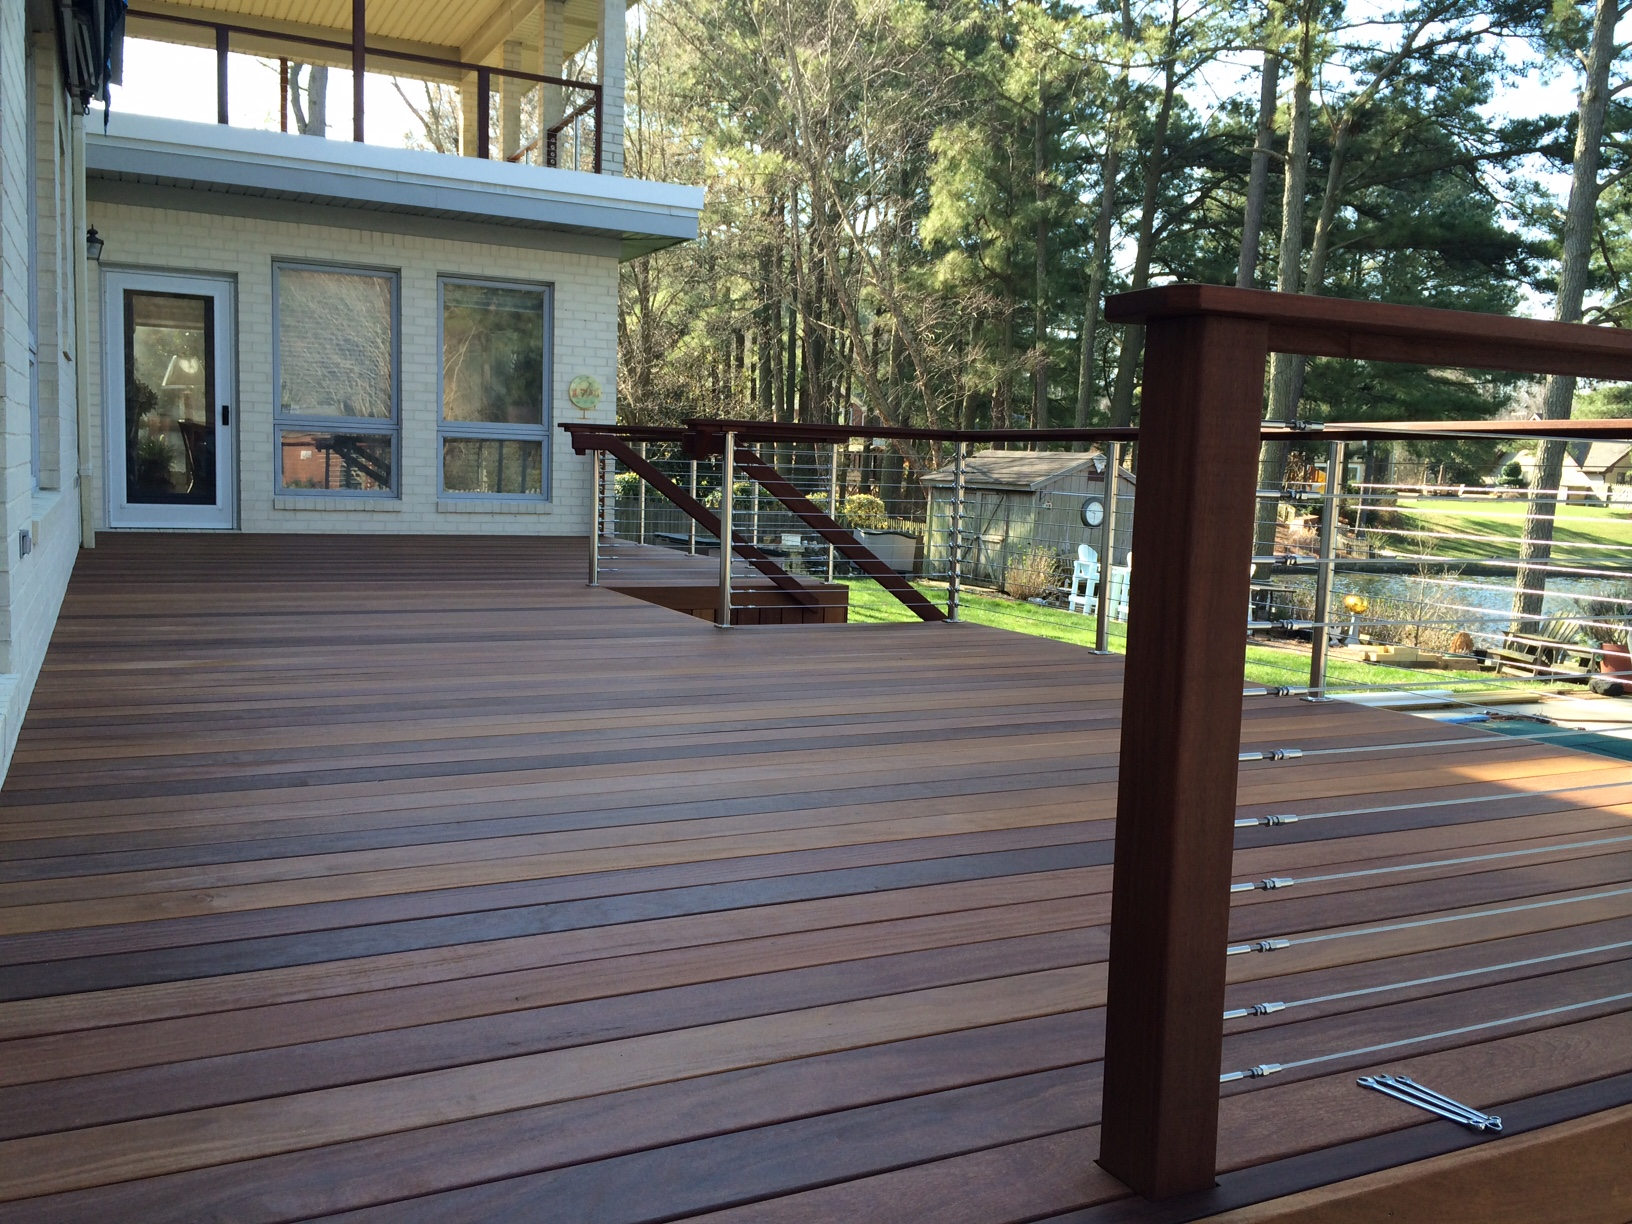 Brazilian ipe 39 hardwood decked out builders for Hardwood decking supply